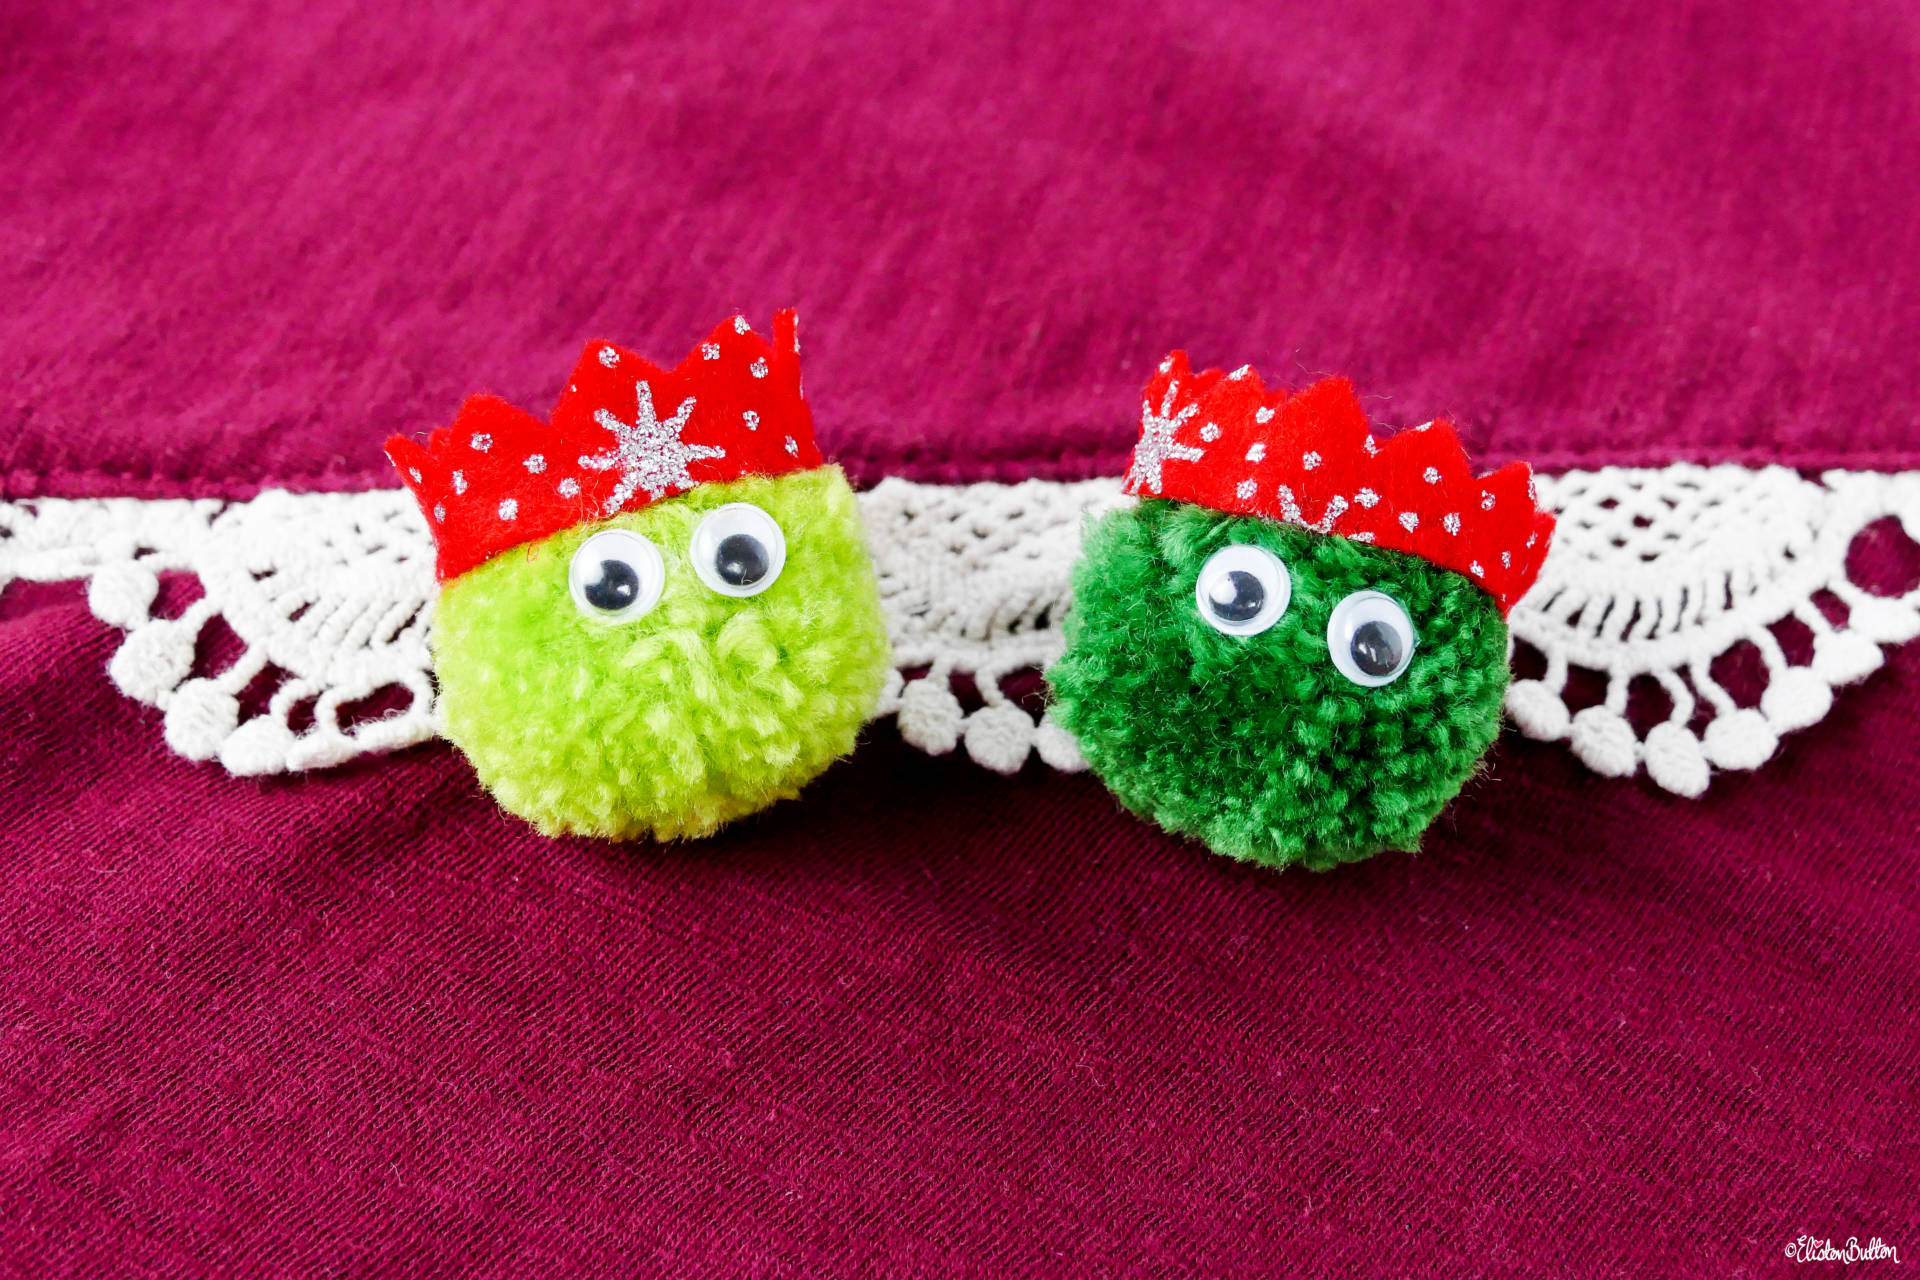 Dark and Light Green Christmas Sprout Pom Pom Brooches with Red Glitter Party Hats by Eliston Button - Christmas Sprout Pom Pom Brooches! at www.elistonbutton.com - Eliston Button - That Crafty Kid – Art, Design, Craft & Adventure.